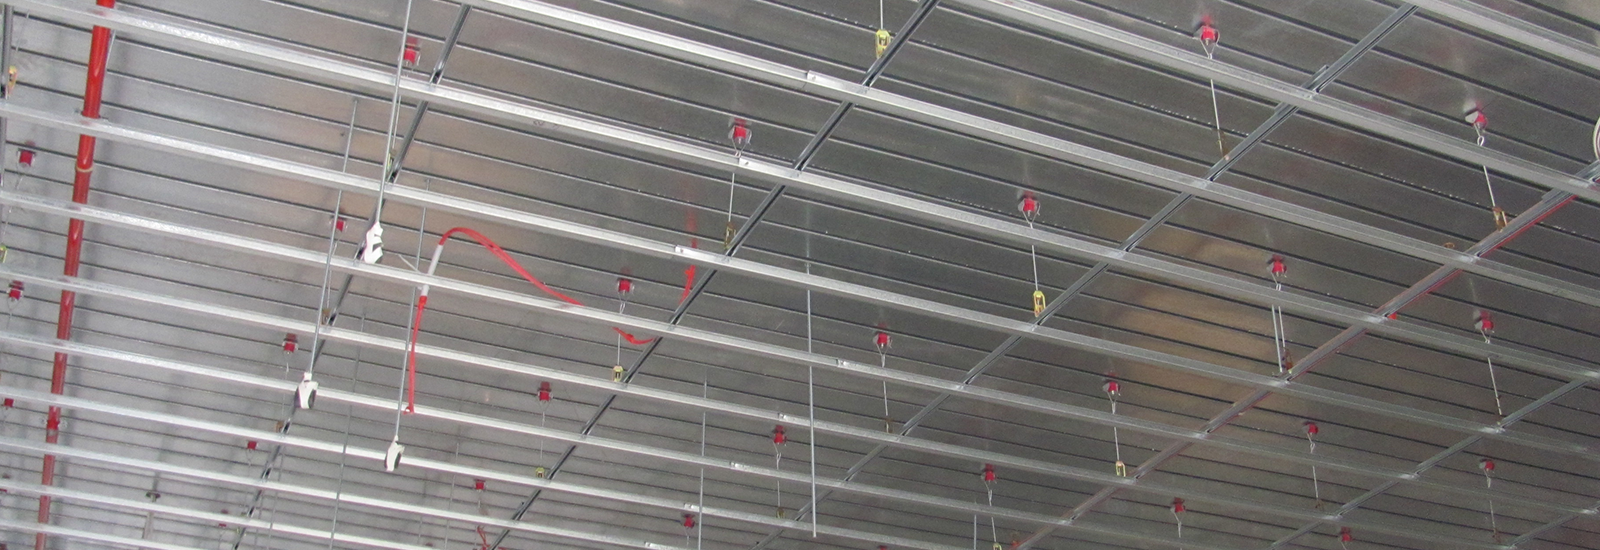 Ceiling soundproofing system